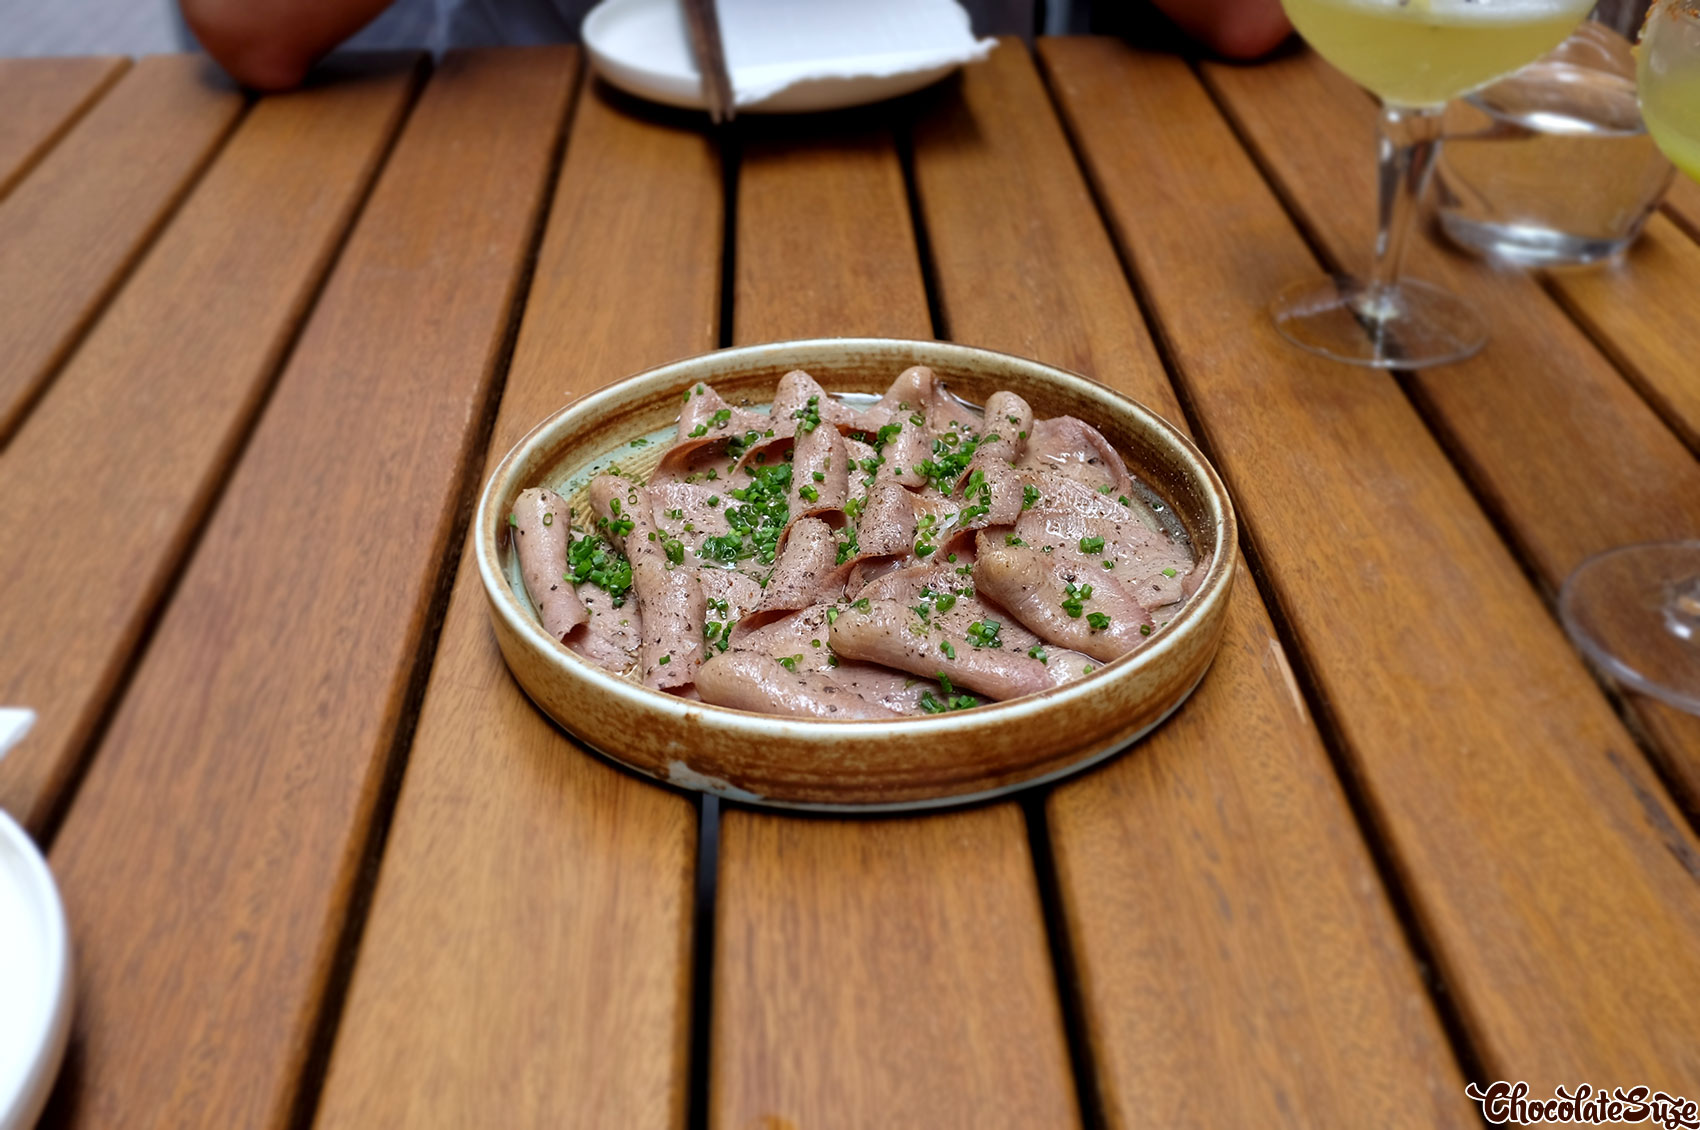 Ox tongue at Monkeys Corner, Chippendale